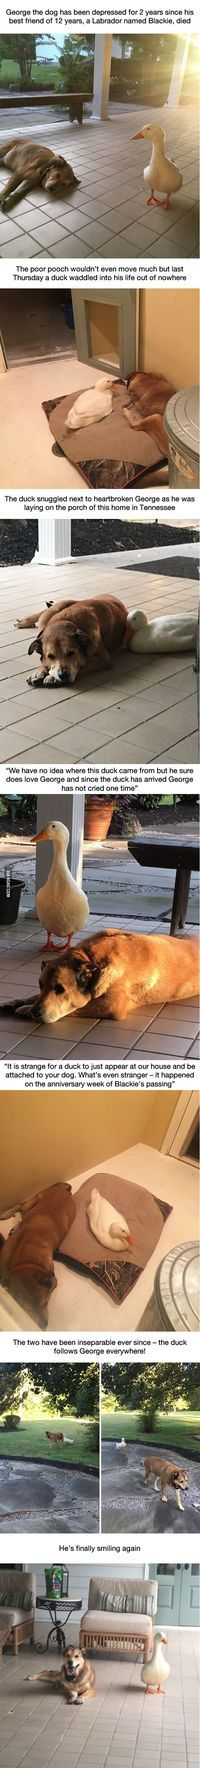 This dog was depressed for 2 years after his best friend died, but then this duck showed up - You crazy animal - Chien Animals And Pets, Baby Animals, Funny Animals, Cute Animals, Nature Animals, Wild Animals, Cute Puppies, Cute Dogs, Puppies Puppies